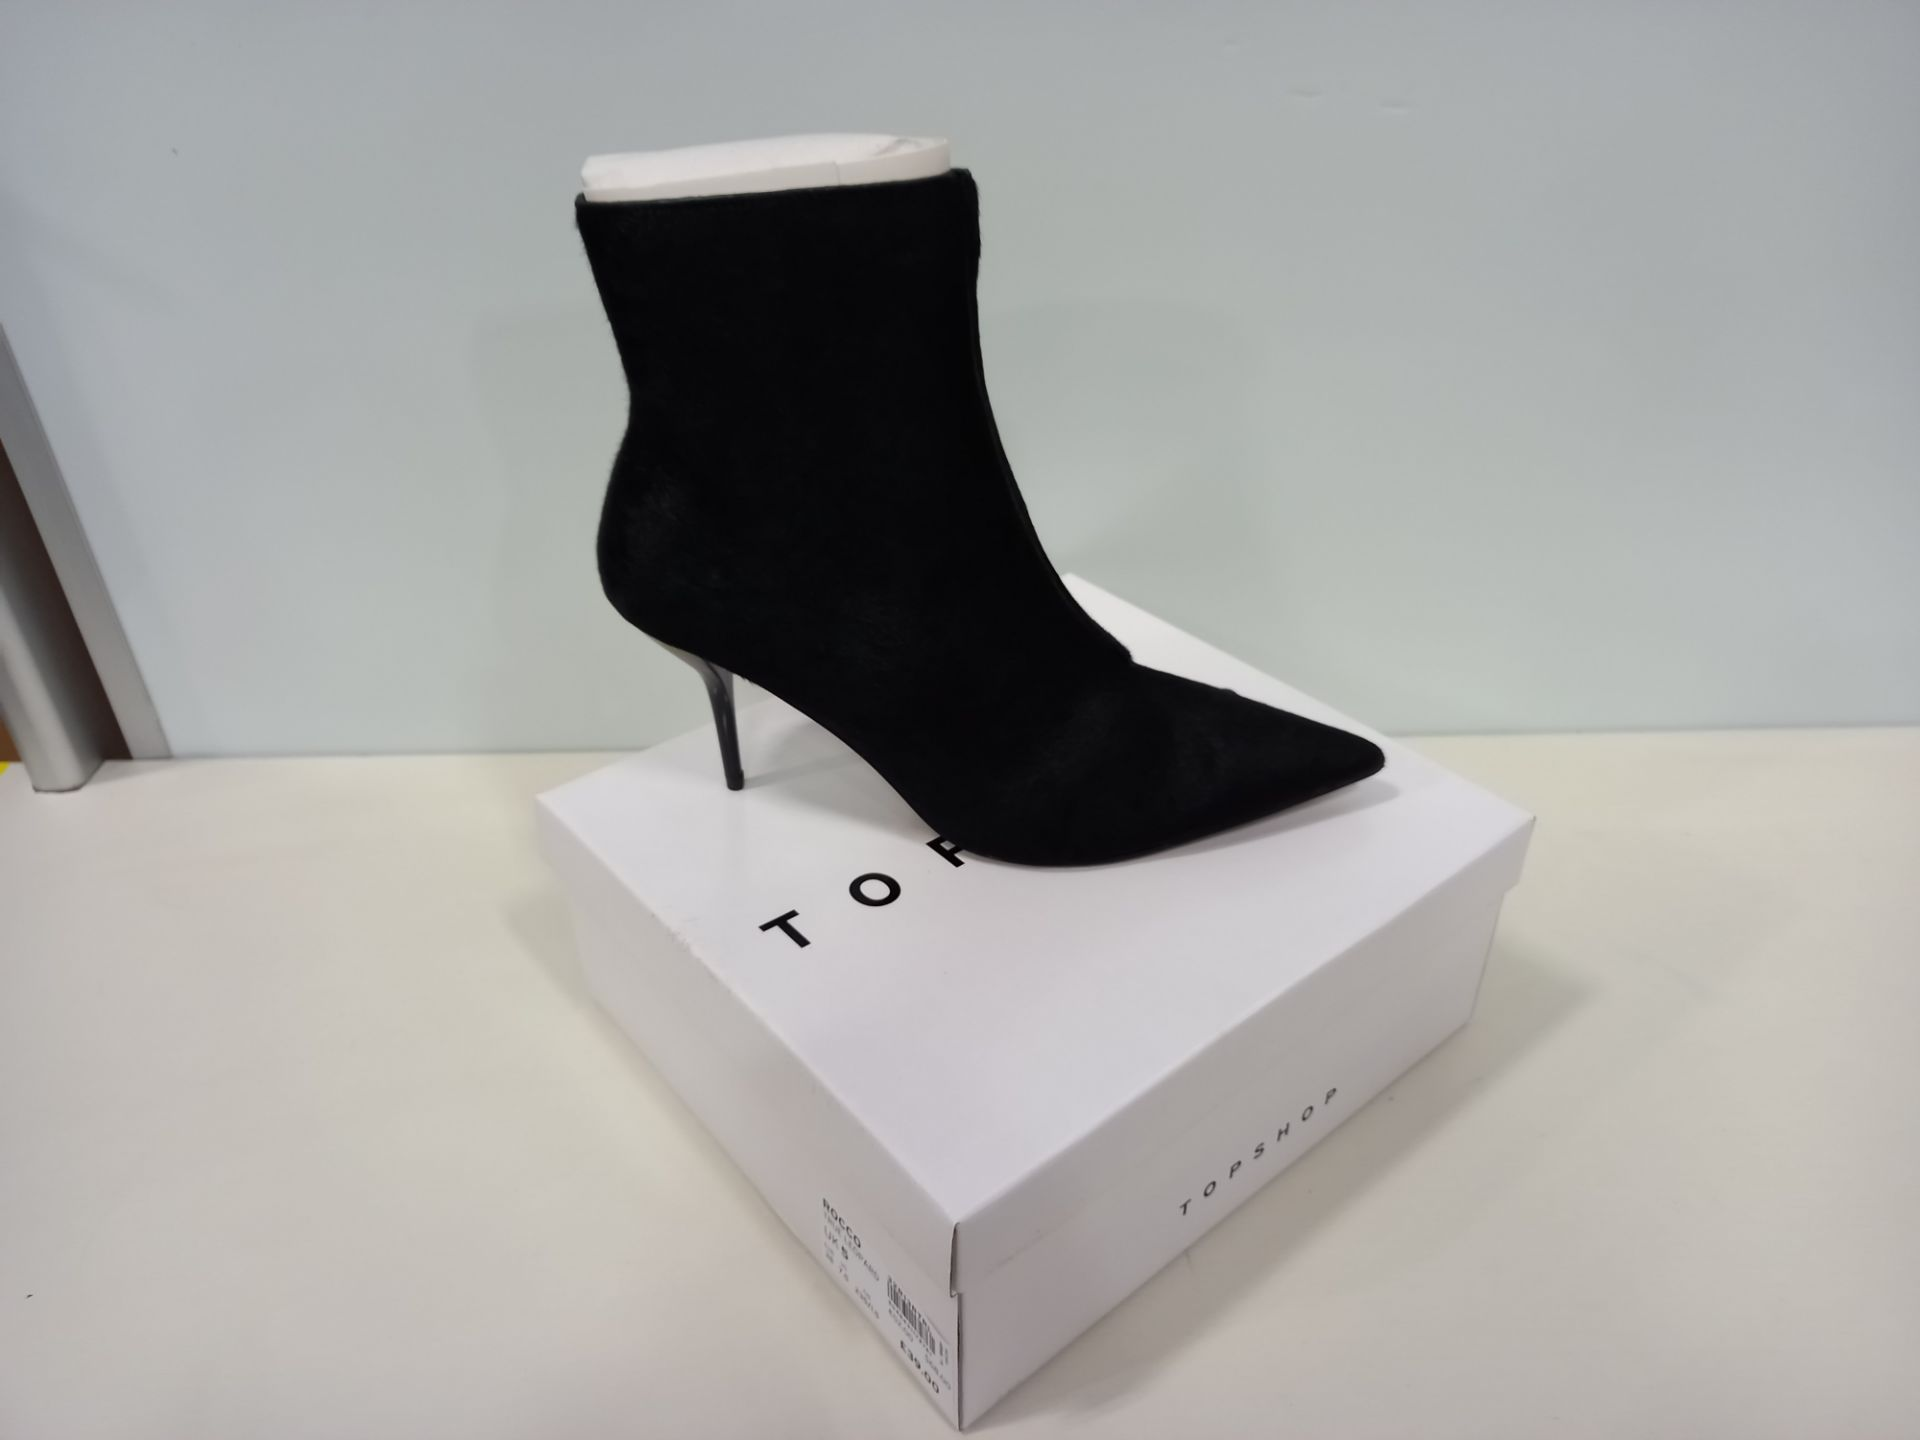 10 X BRAND NEW TOPSHOP HEY BLACK SHOES UK SIZE 6 AND 4 RRP £79.00 (TOTAL RRP £790.00)